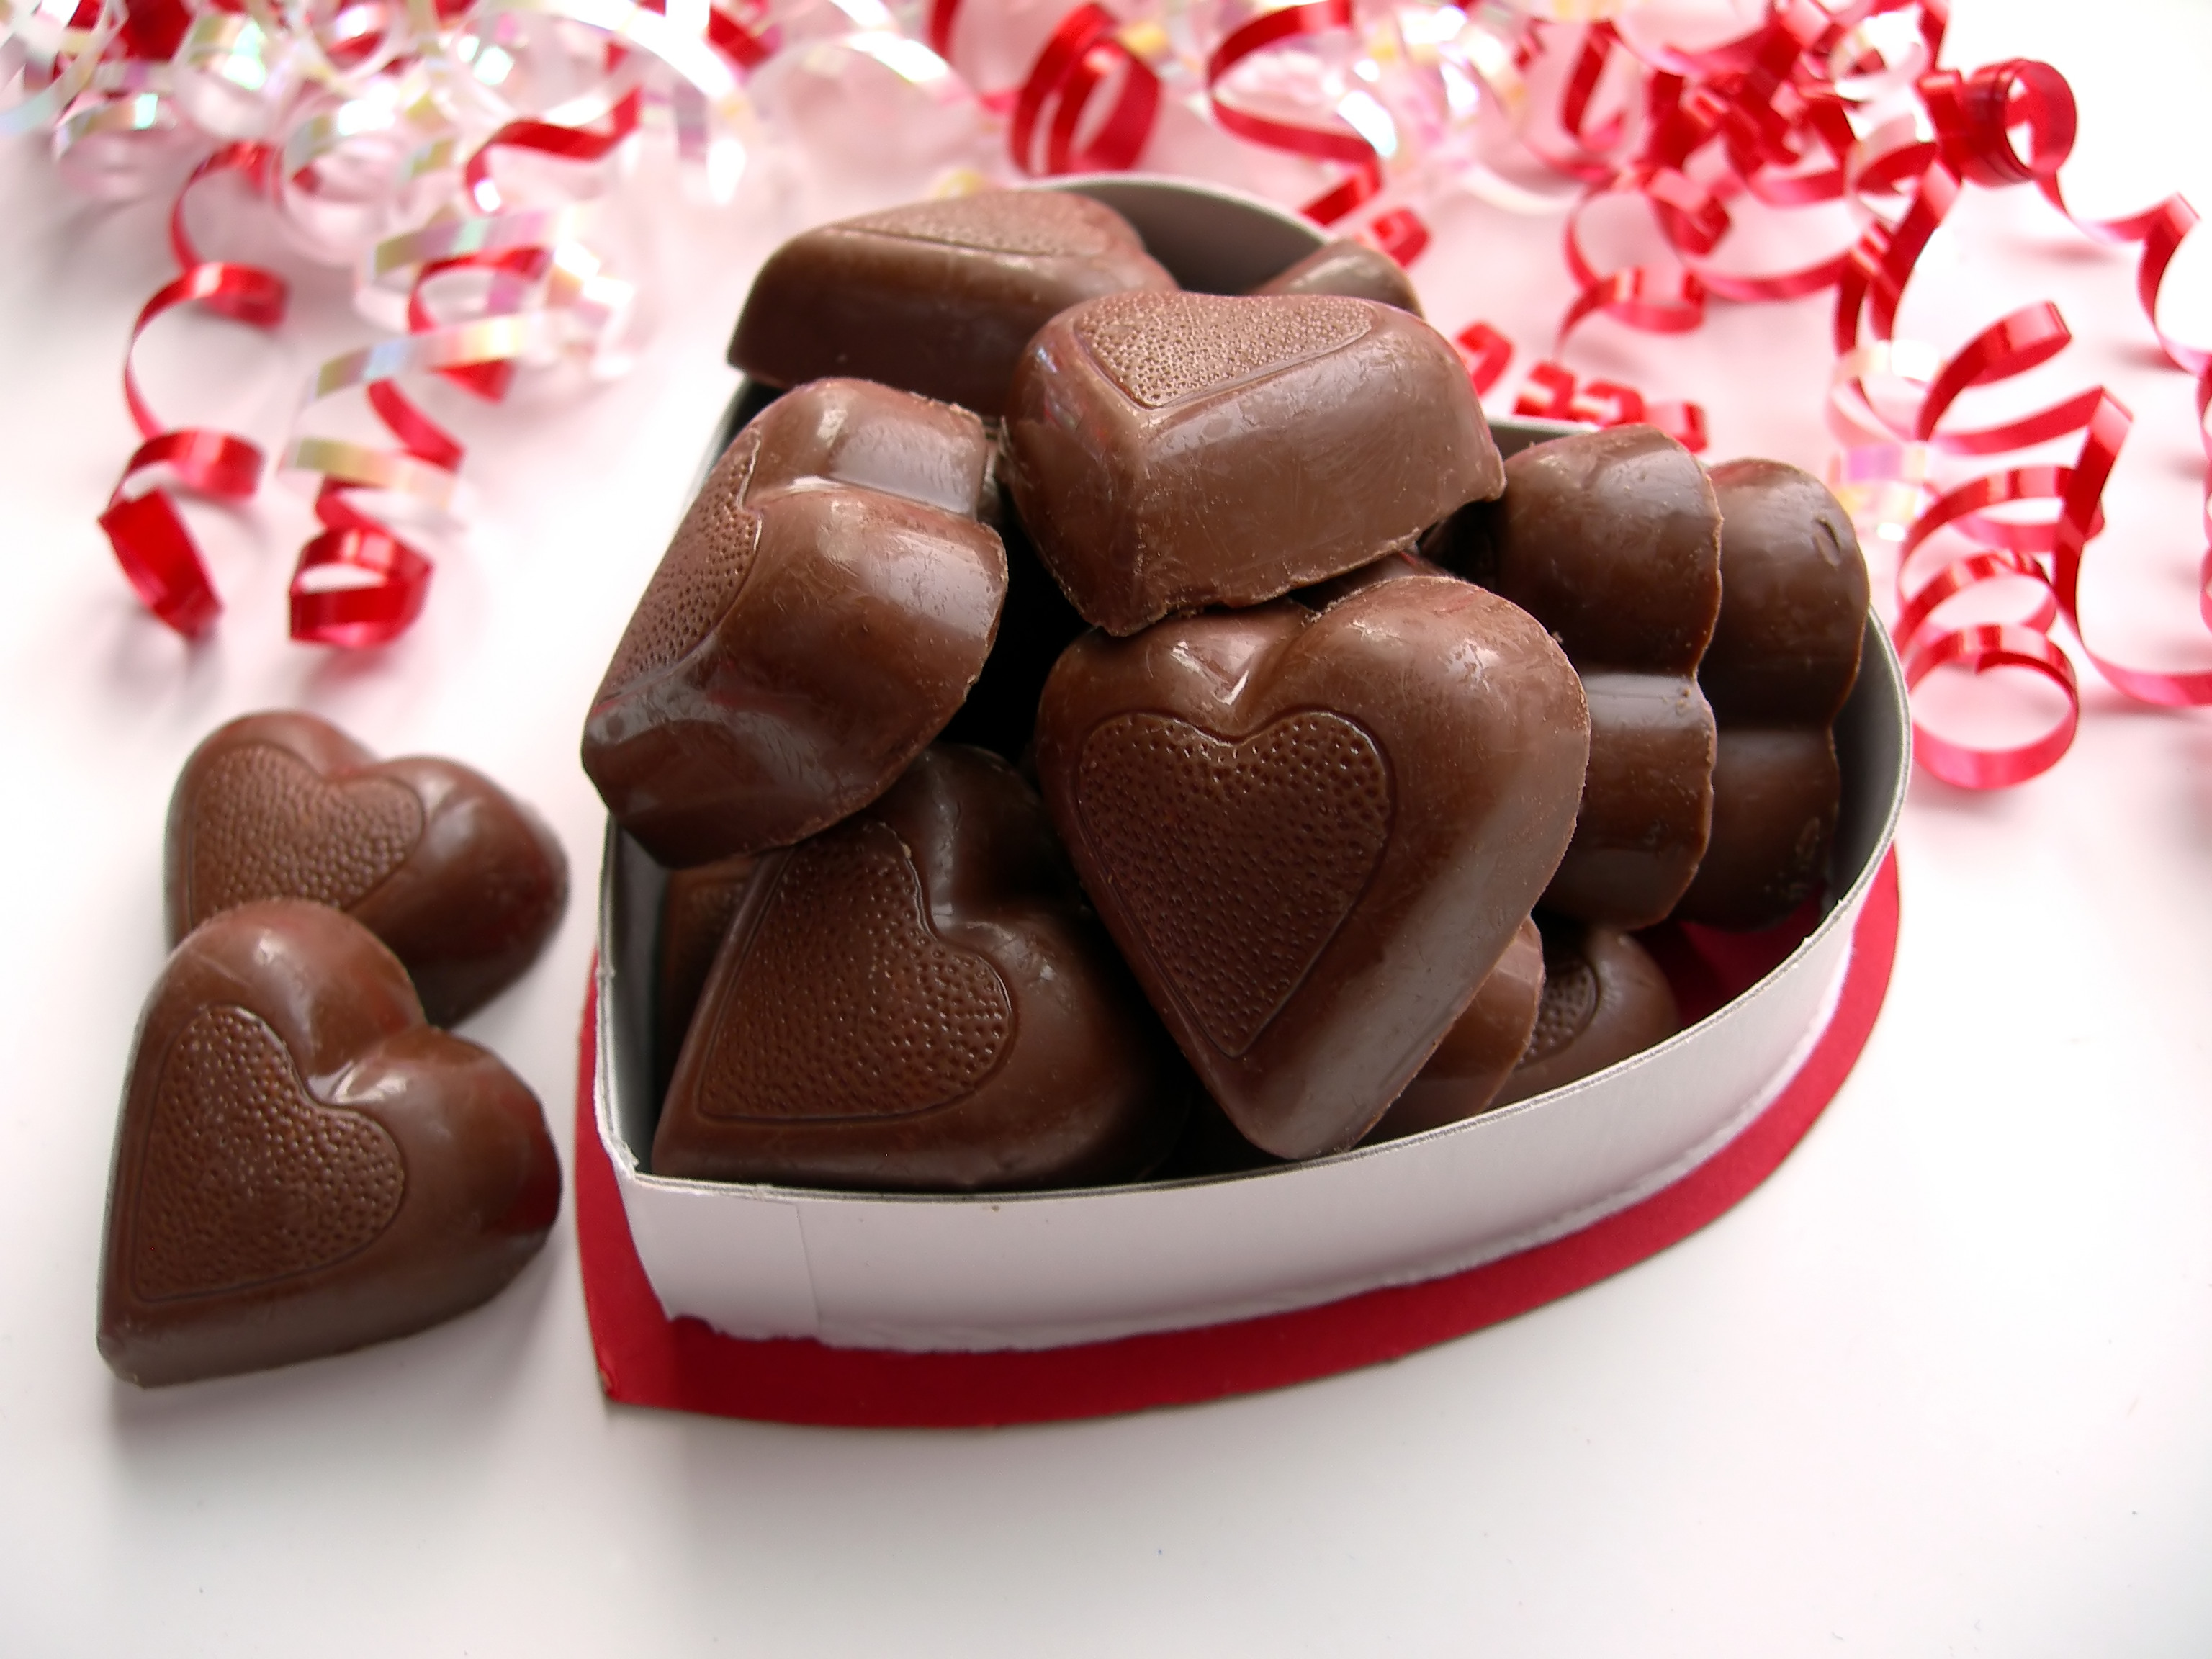 latest-2013-Valentines-Chocolates-Valentine's-lover's-day-gift-for-her-him-propose-i-love-you-feb-14-Chocolate-Gifts-10021